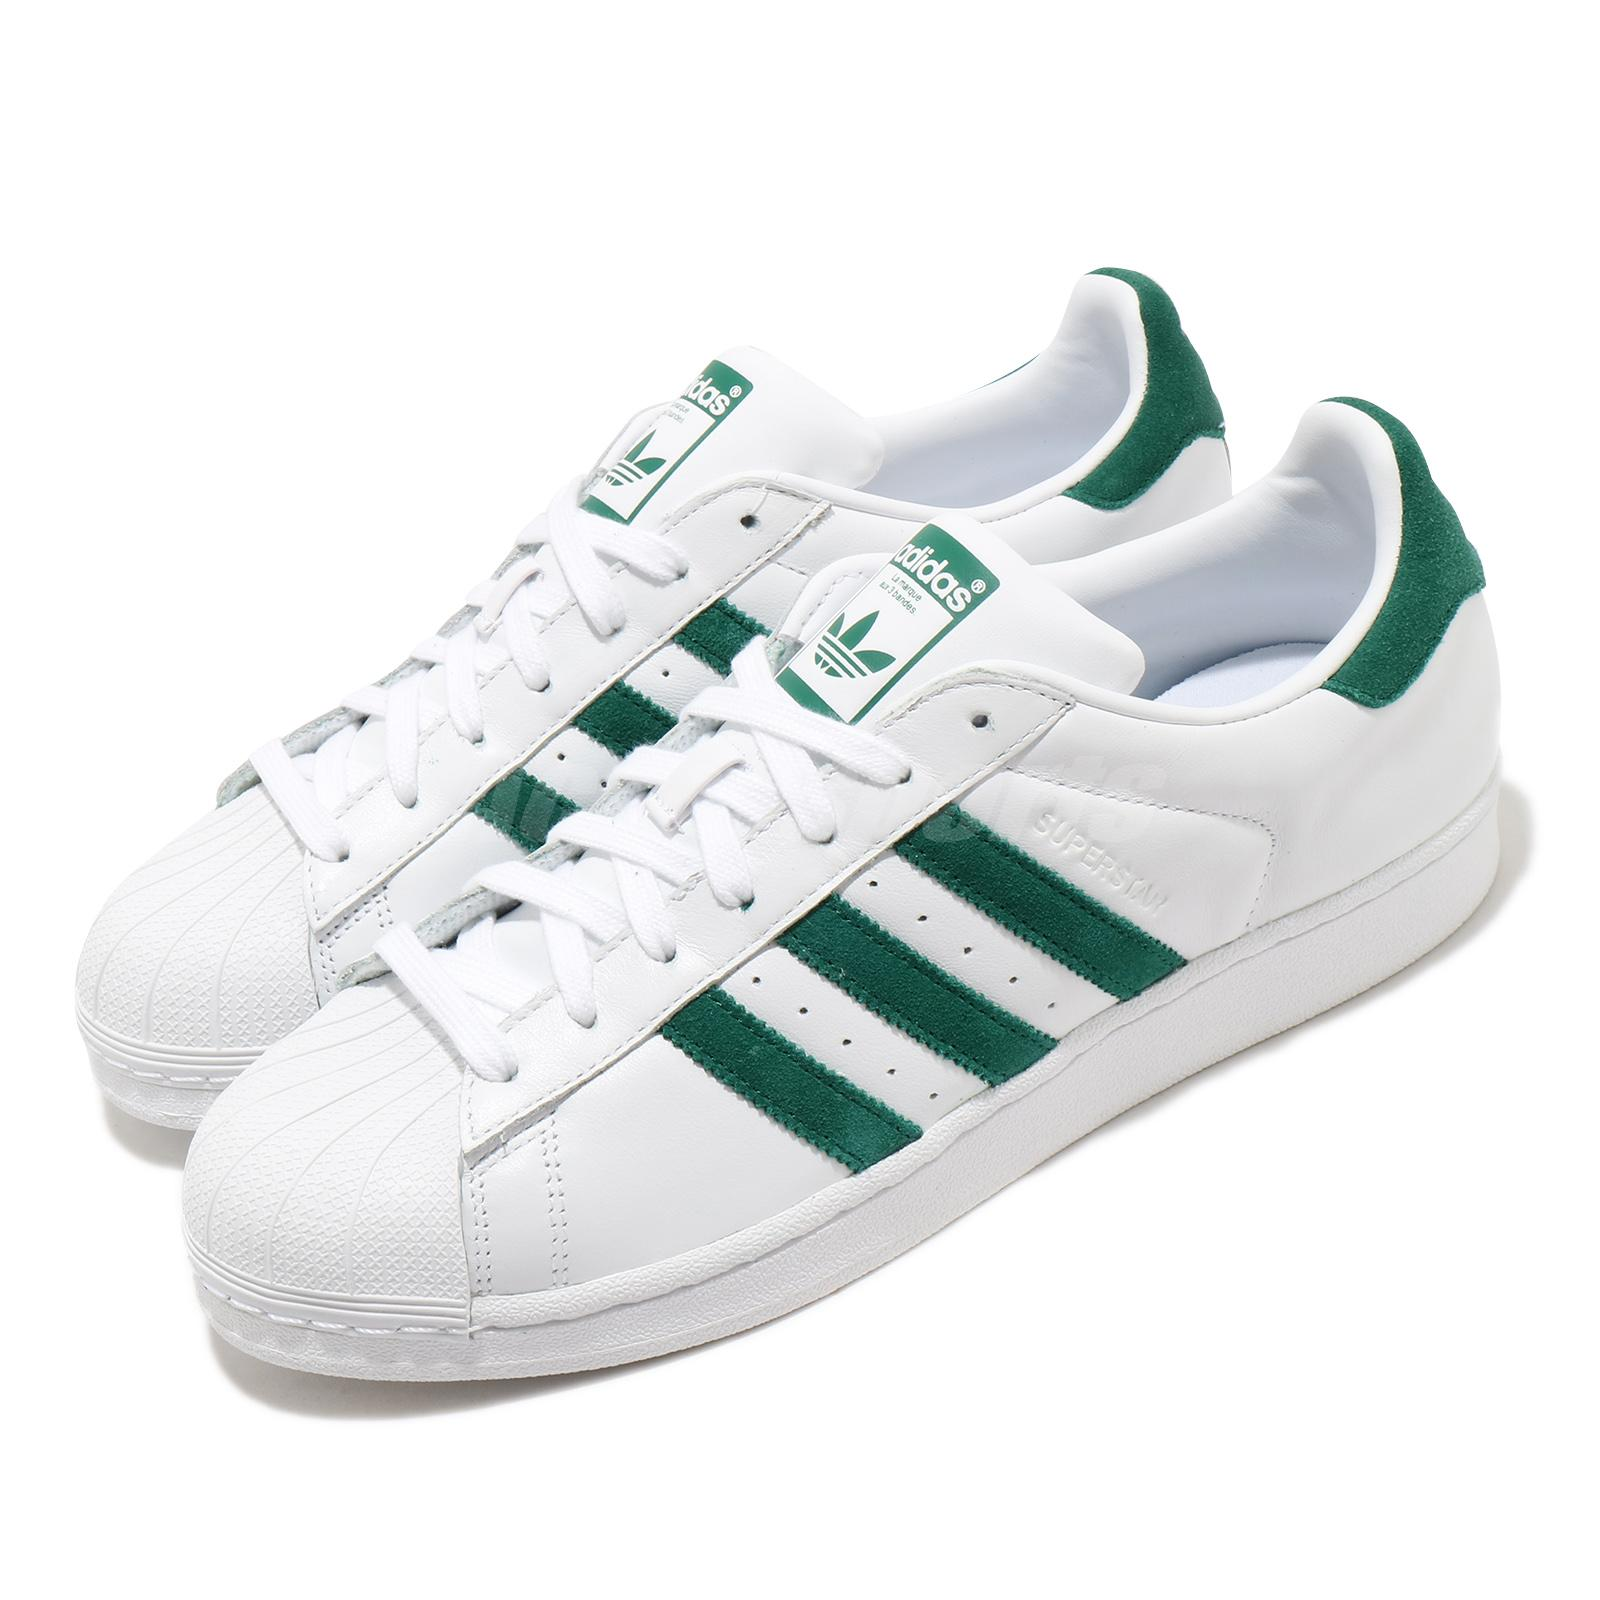 neutral Contrapartida Ídolo  adidas Originals Superstar White Green Men Women Unisex Classic Shoes  EE4473 | eBay